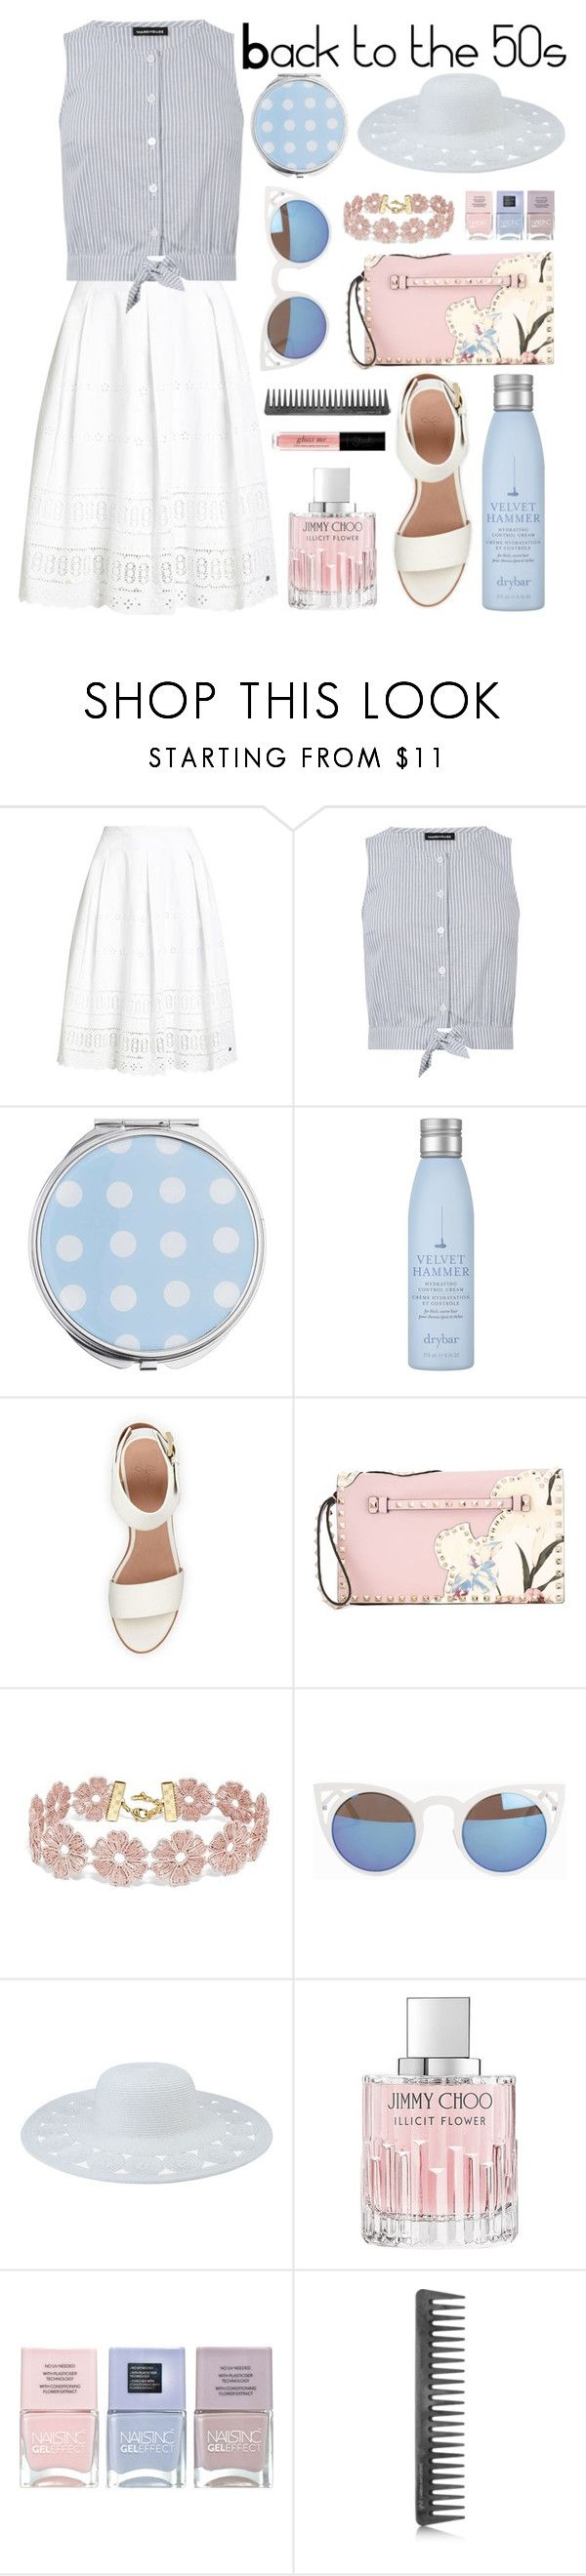 """Back to the 50s"" by isabelhalen ❤ liked on Polyvore featuring Superdry, Warehouse, Miss Selfridge, Drybar, BEA, Valentino, BaubleBar, Quay, San Diego Hat Co. and Jimmy Choo"